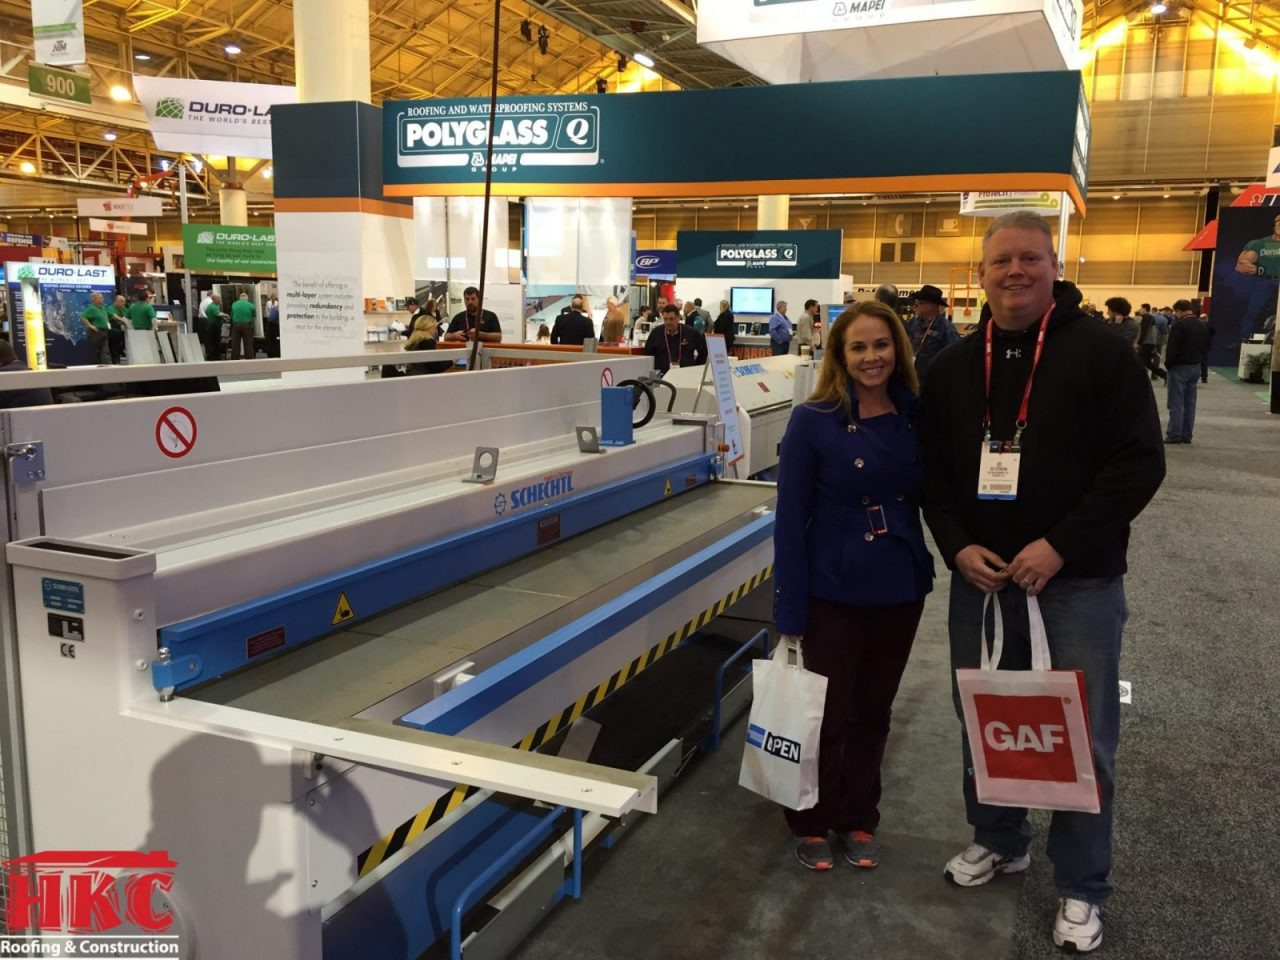 Hkc Roofing Attends 2015 Ire Hkc